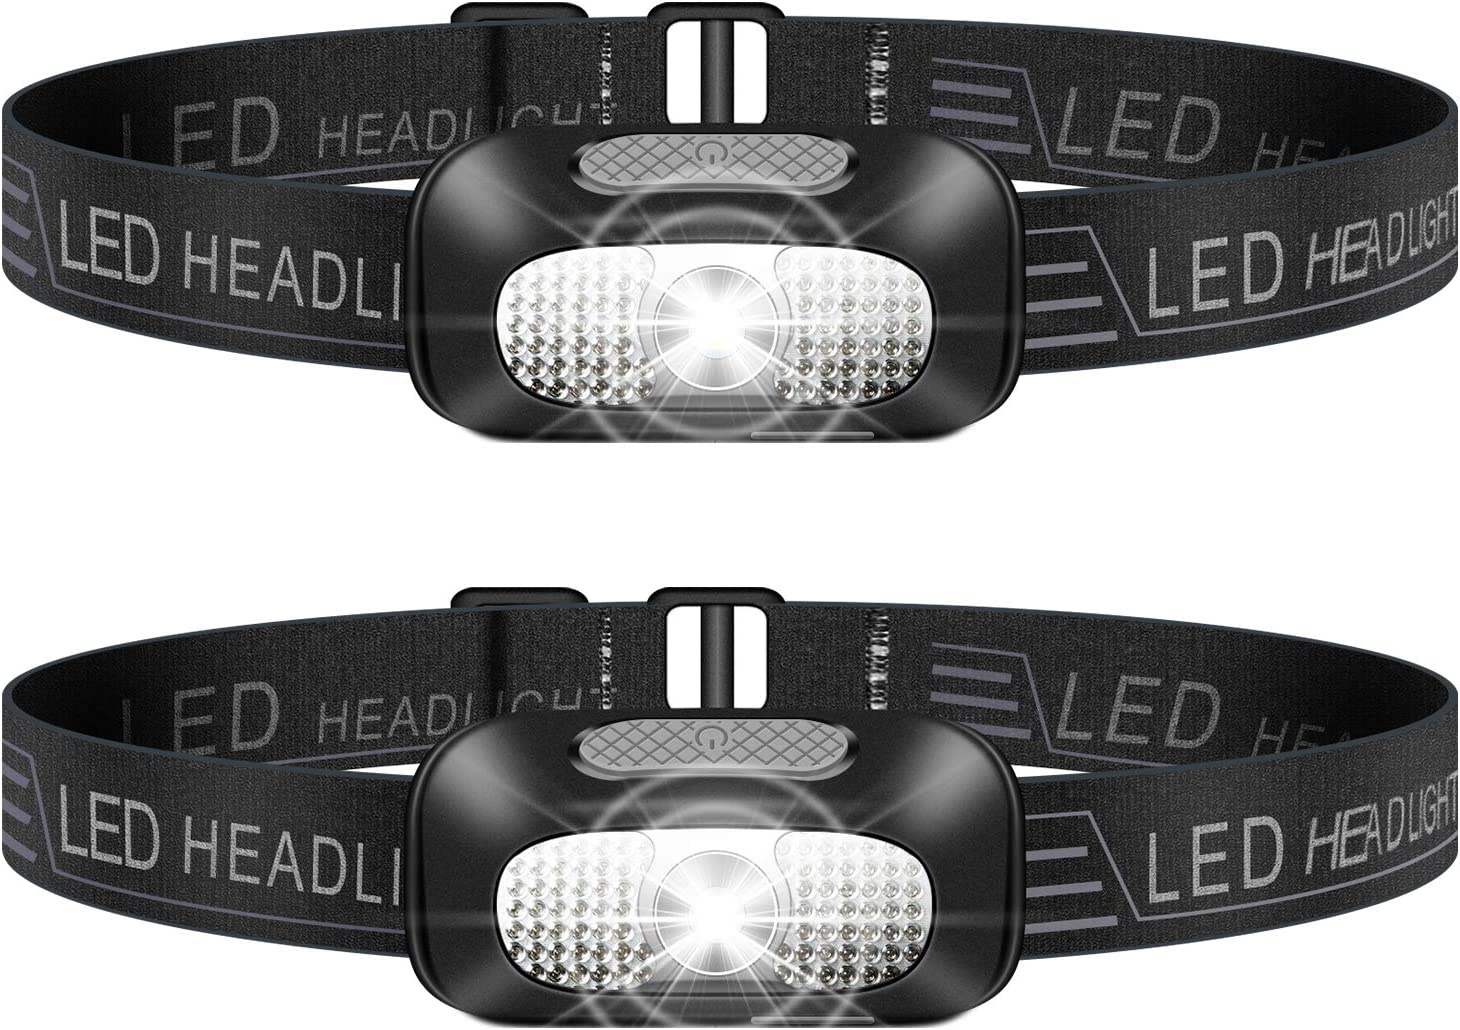 SYOSIN Headlamp Flashlight, 2 Pack Lightweight Headlight, USB Rechargeable Super Bright Waterproof Head Lamp for Camping, Cycling, Climbing, Hiking, Fishing, Night Reading, Running: Home Improvement